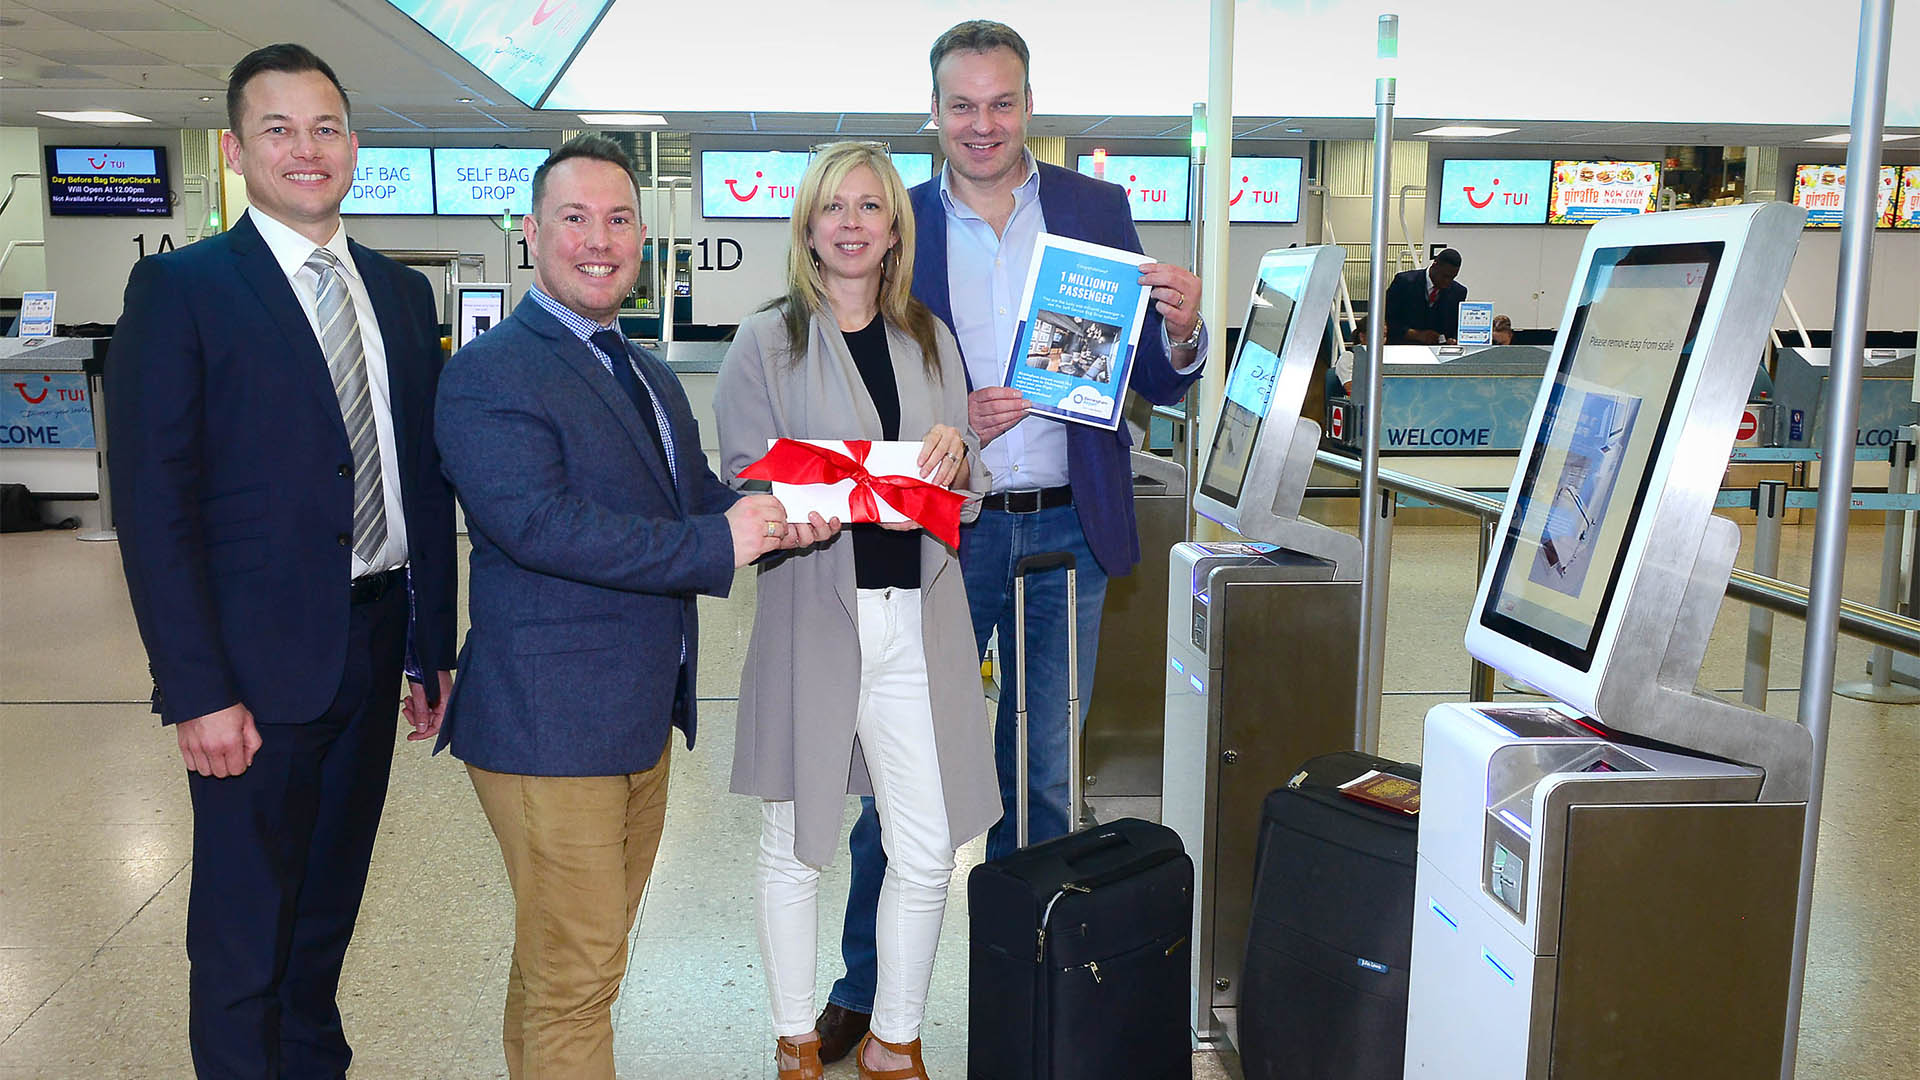 Birmingham Airport S Self Service Bag Drop Reaches One Millionth Passenger Milestone Downtown In Business